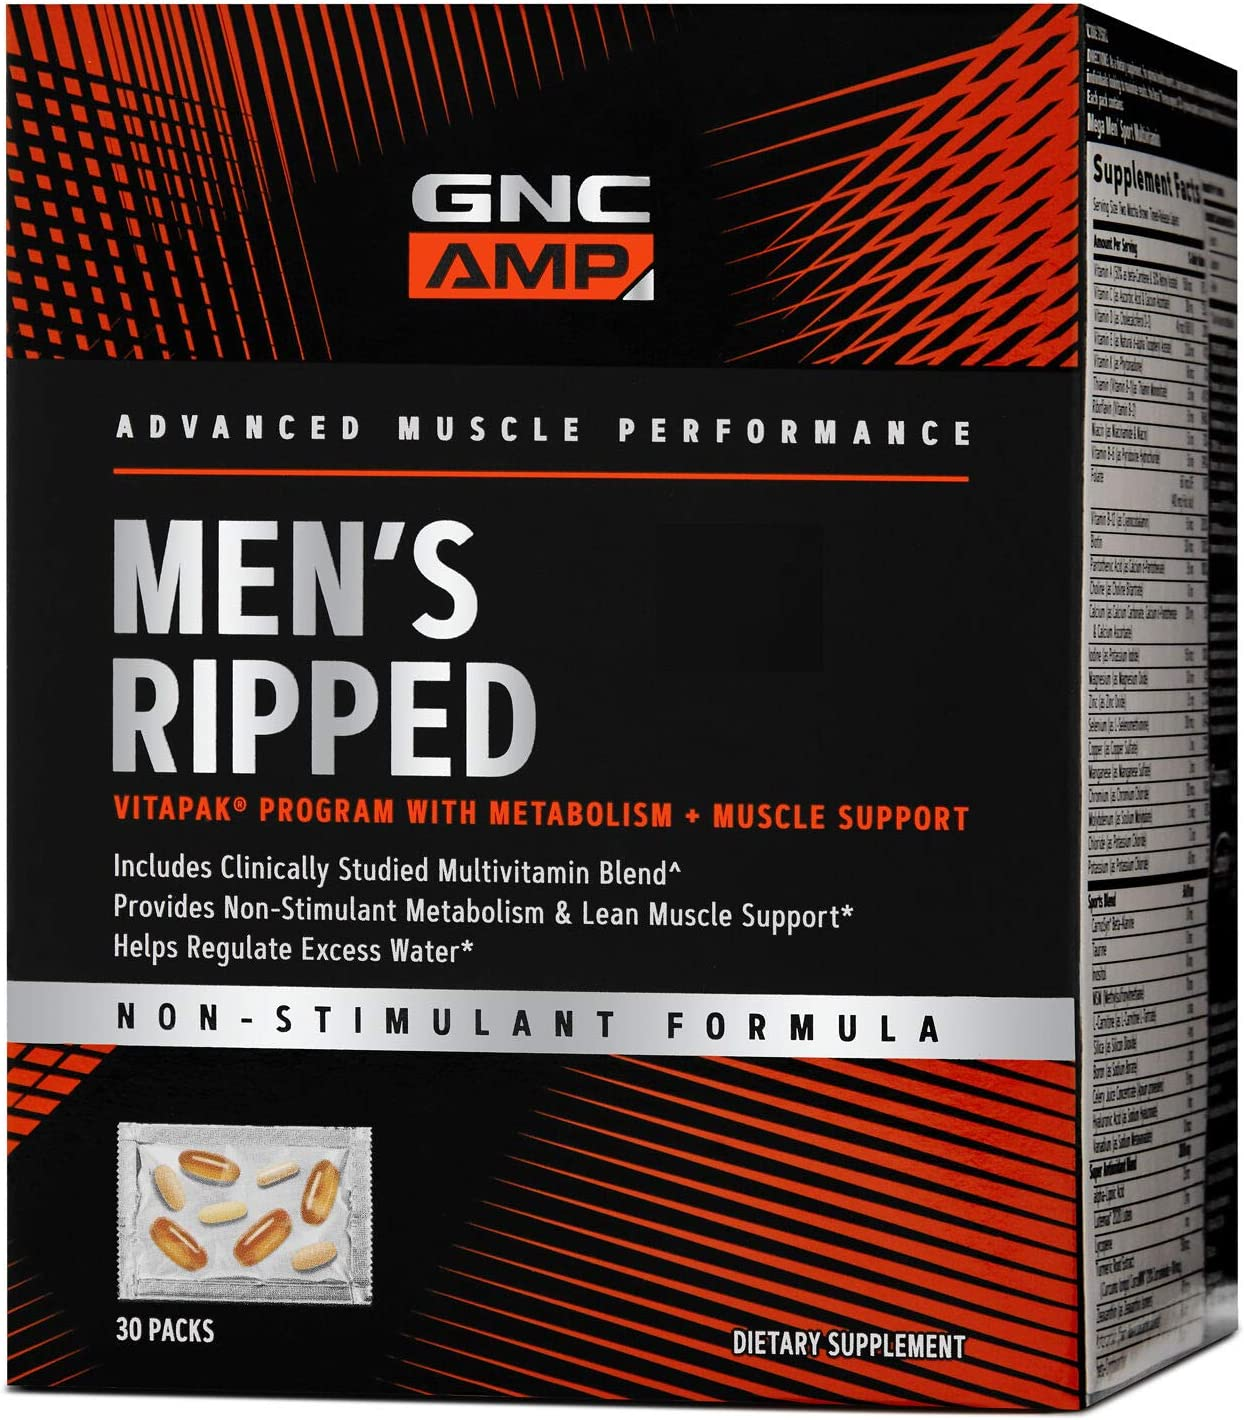 GNC AMP Men's Ripped Vitapak - 30 Packs, Metabolism and Muscle Support